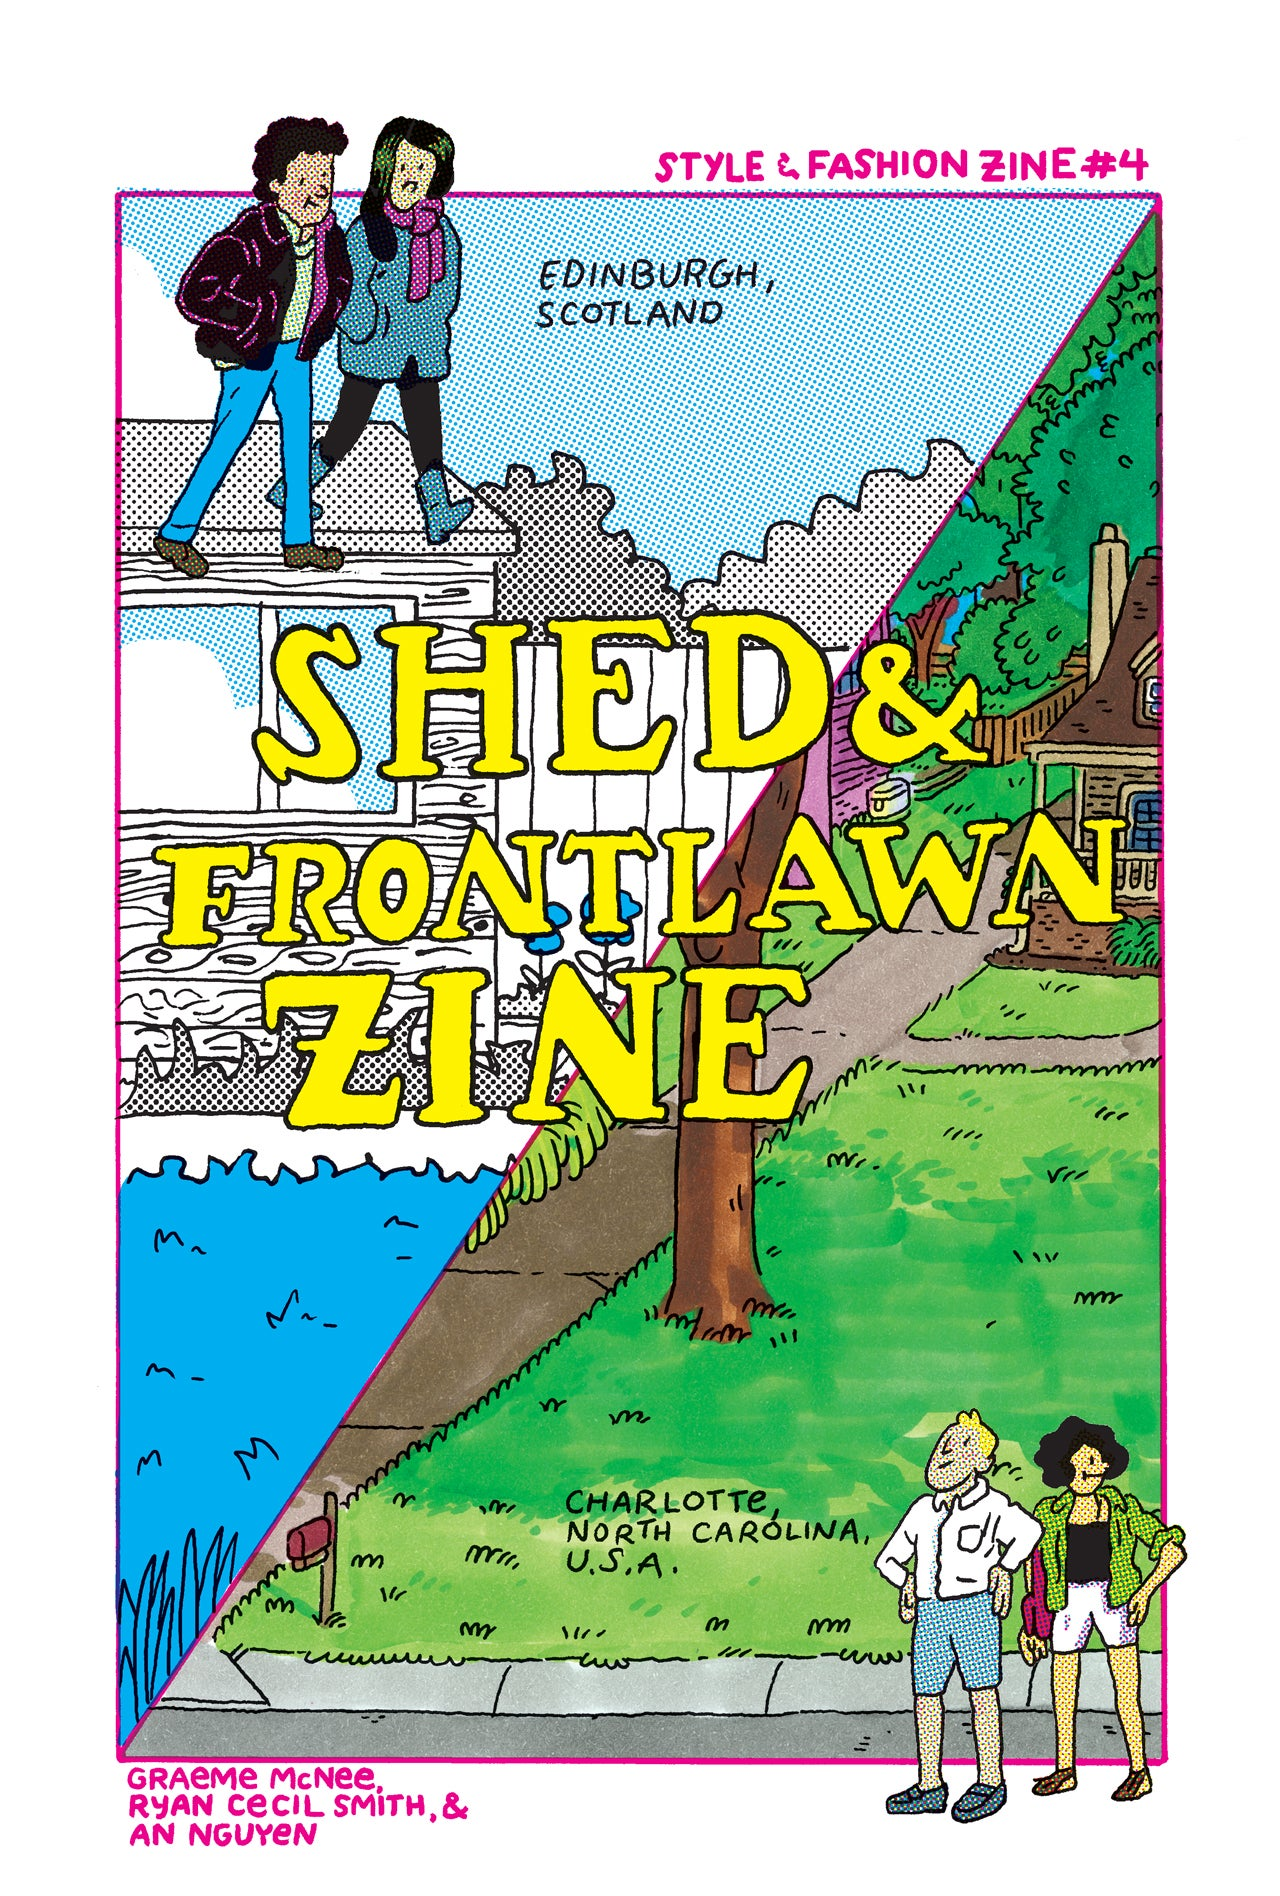 Shed & Frontlawn Zine